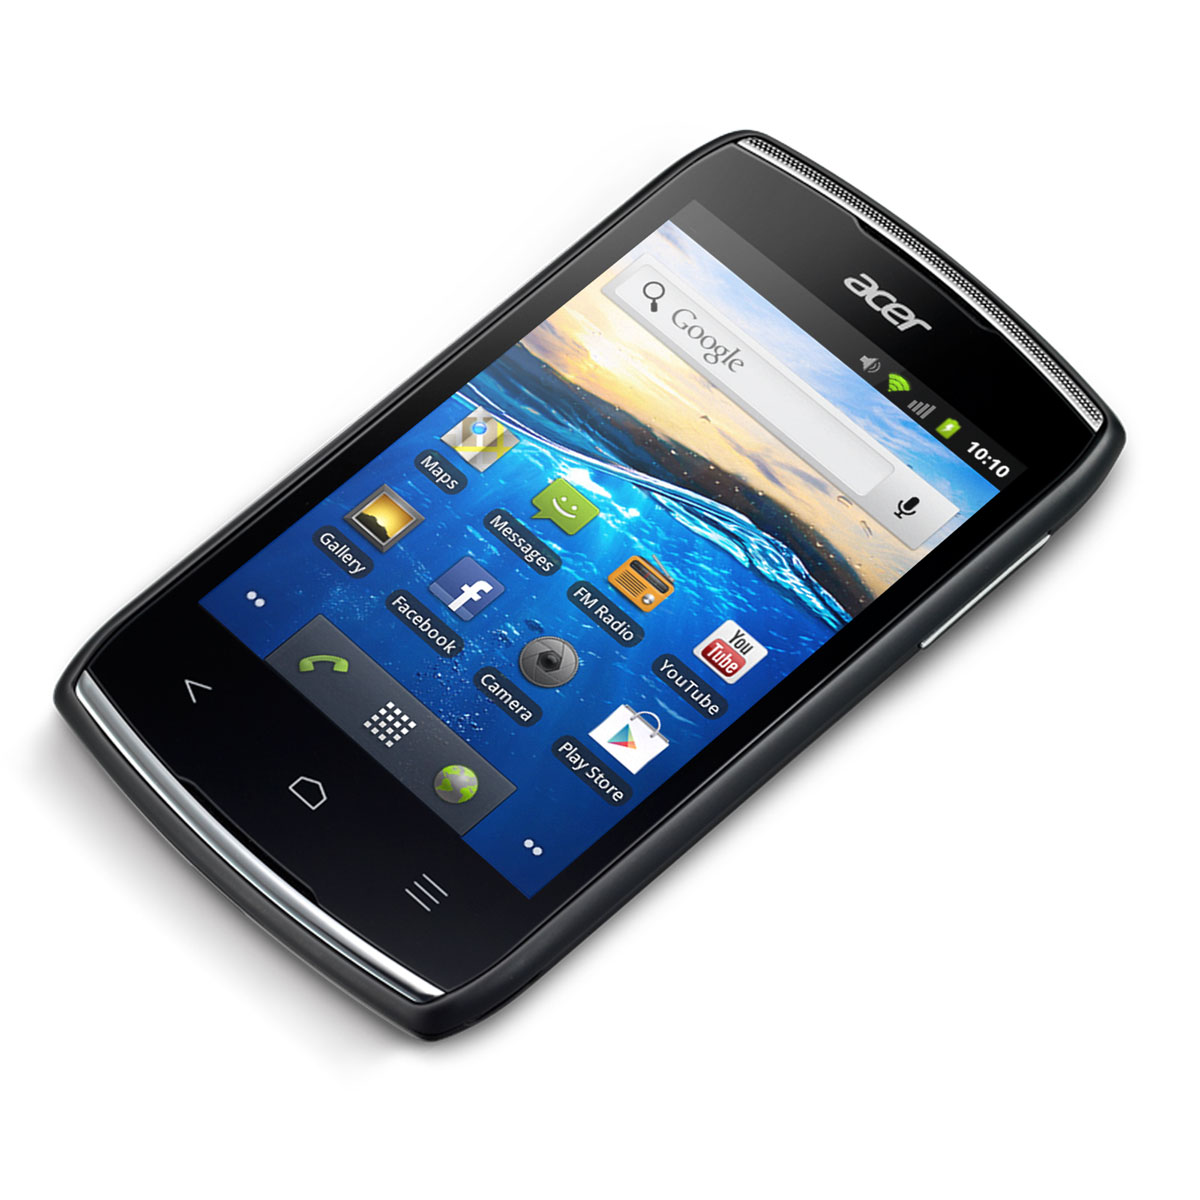 acer liquid z110 duo gentle black mobile smartphone acer sur. Black Bedroom Furniture Sets. Home Design Ideas